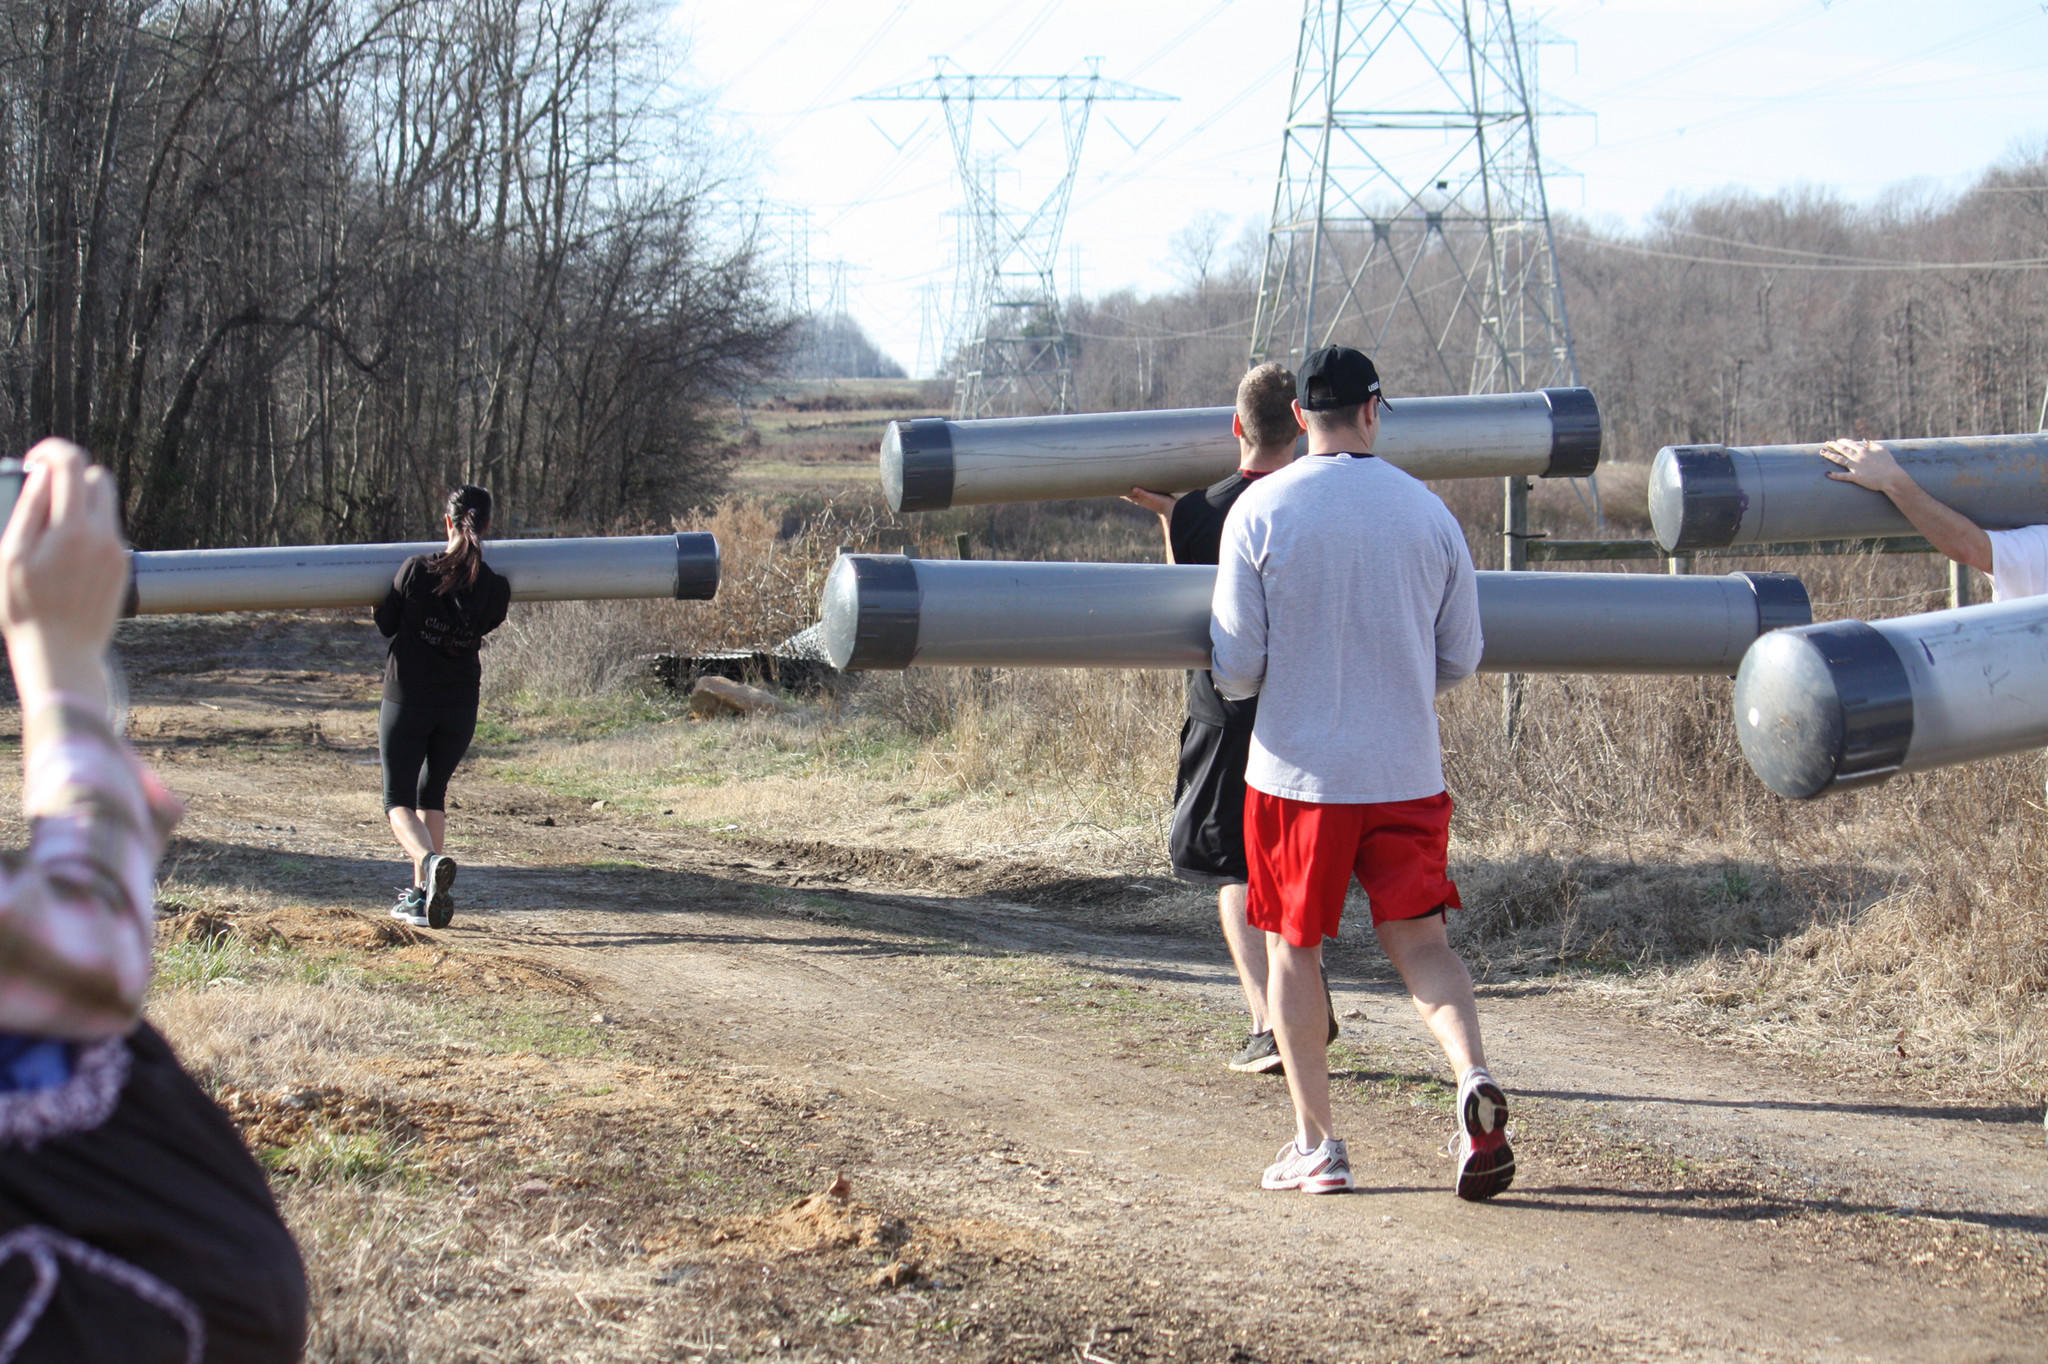 Water-filled tubes are carried by competitors during a training run for a siege race.